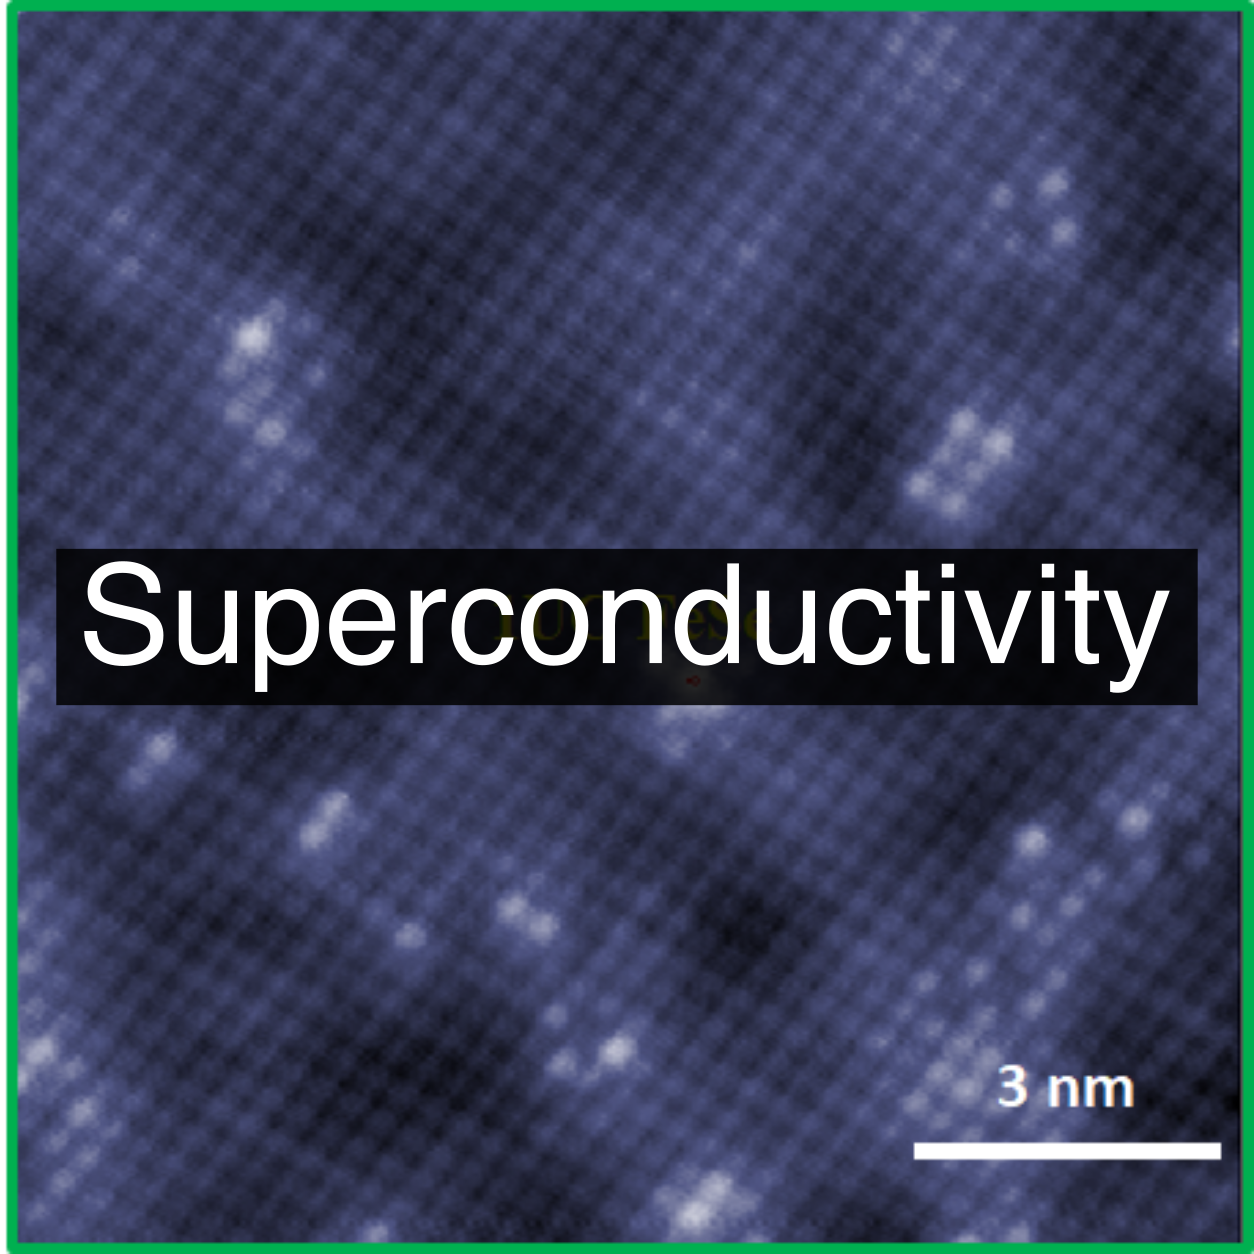 Superconductivity page link